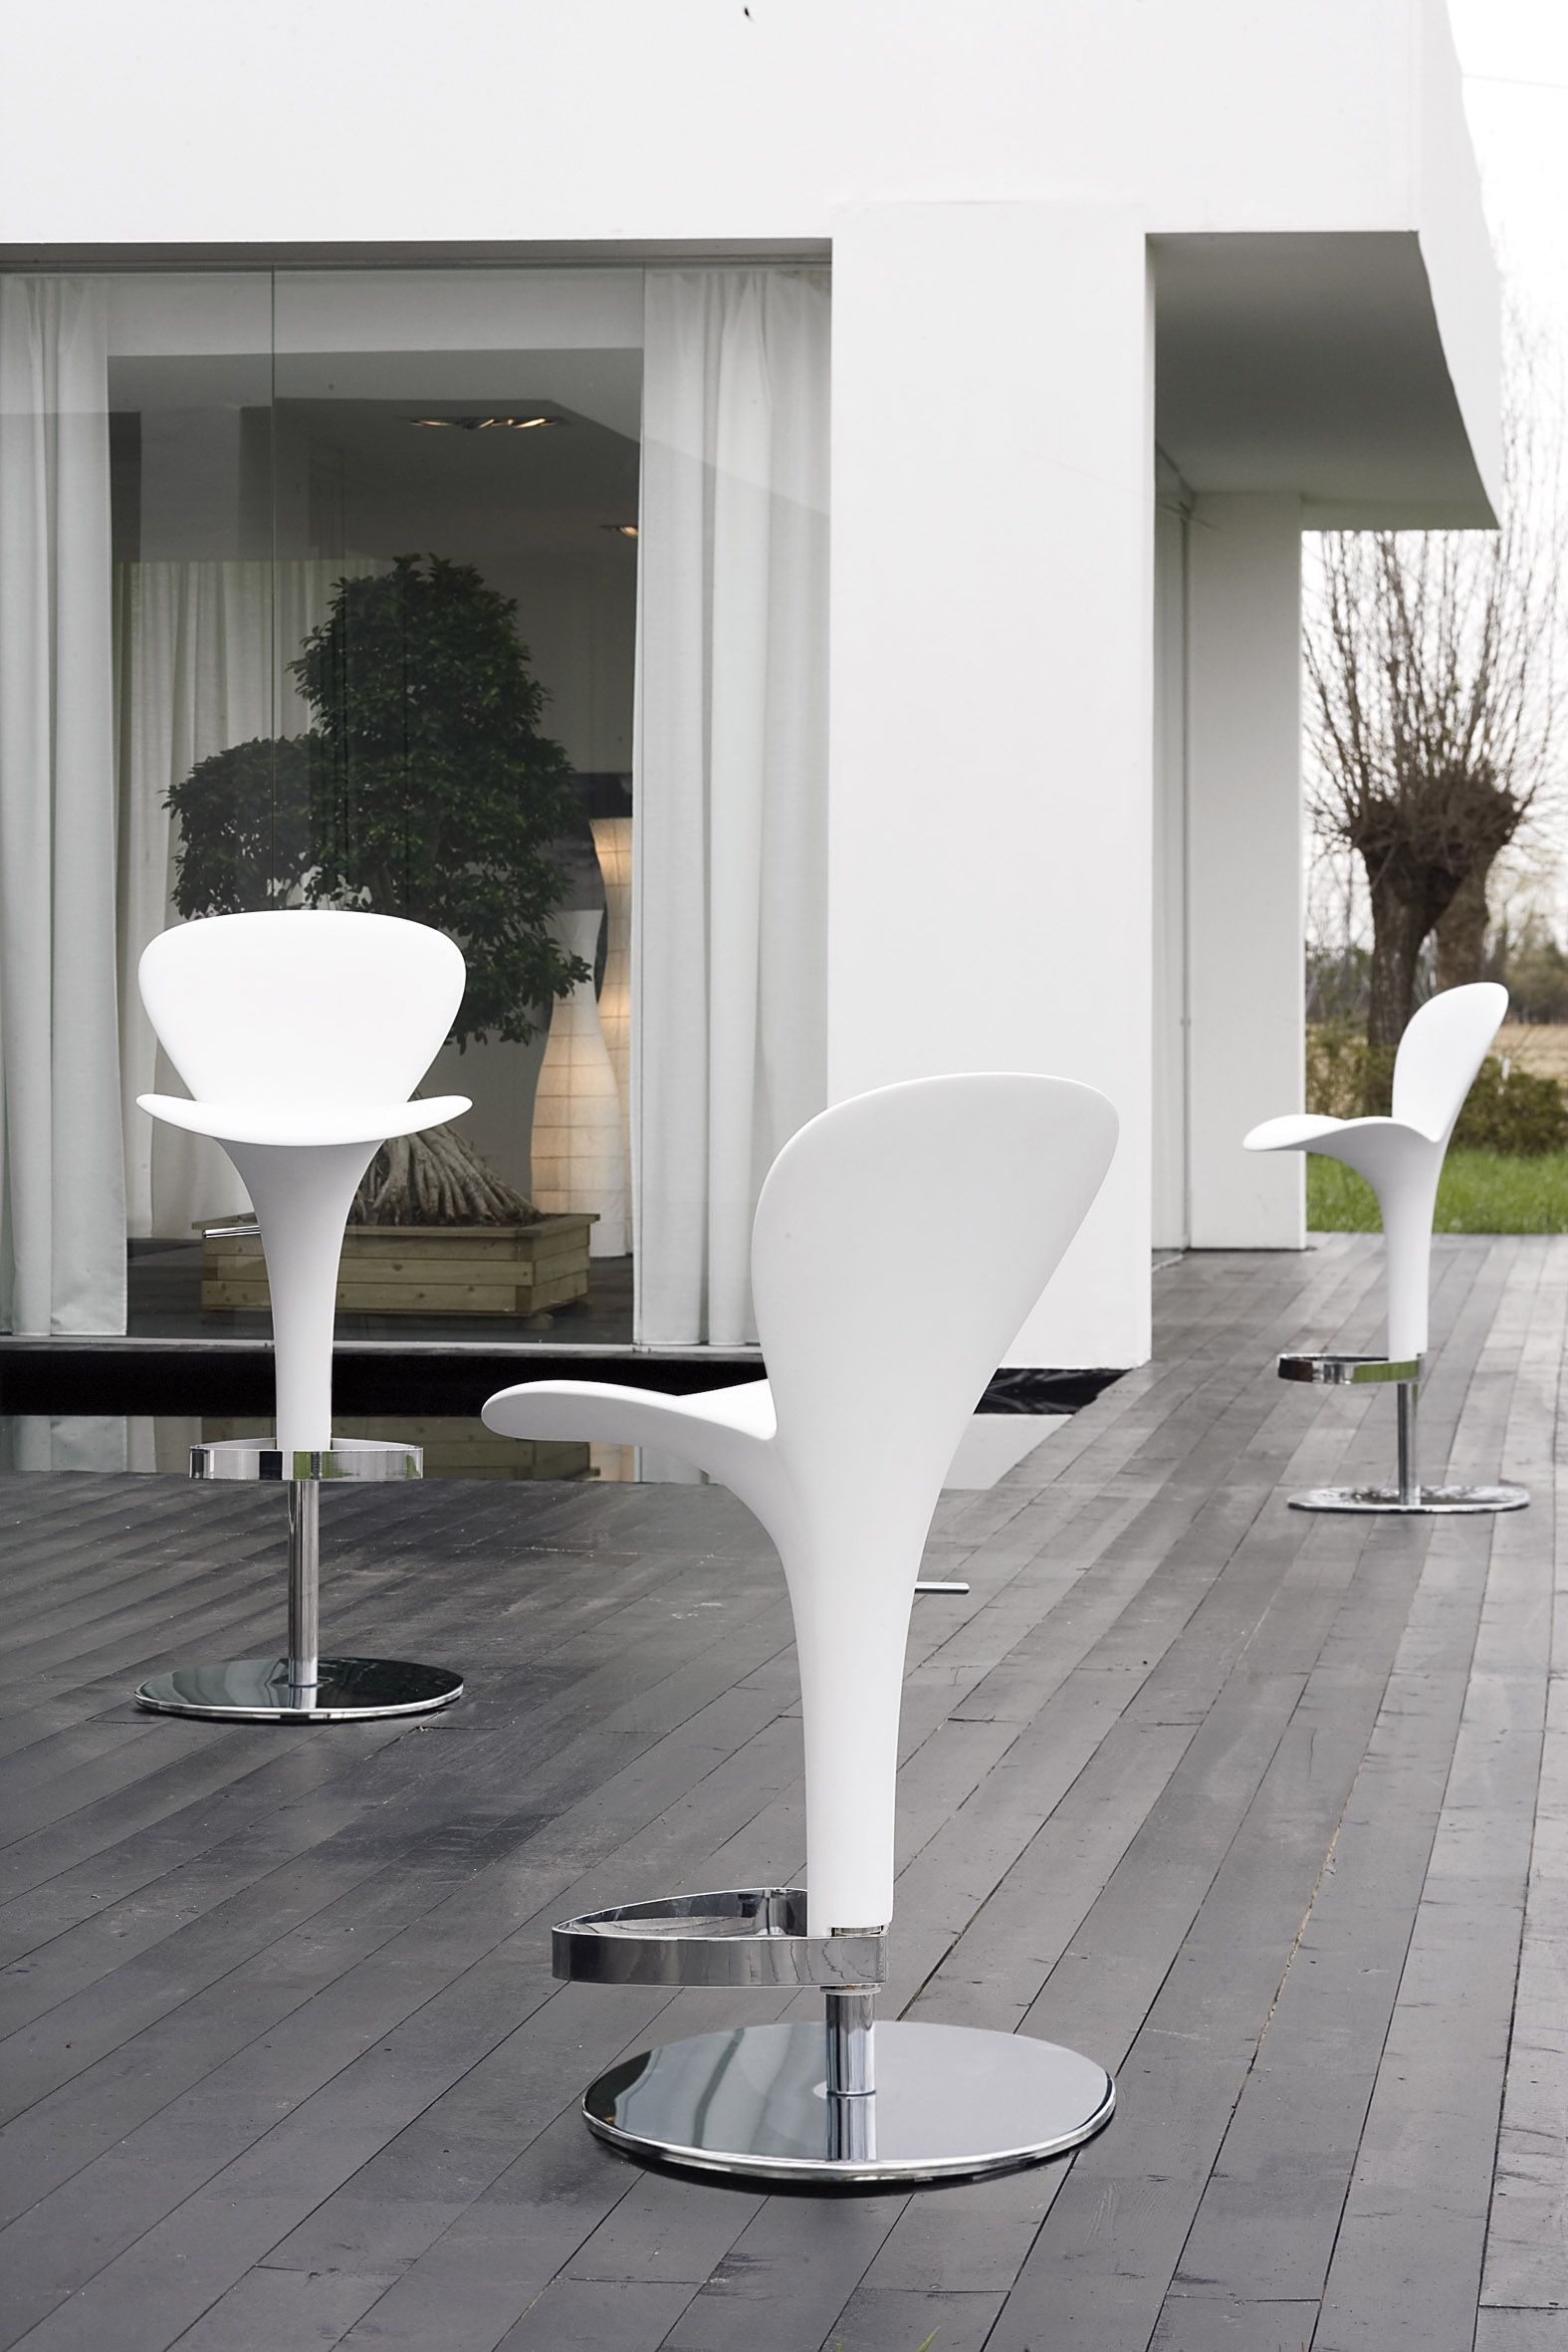 Calice stool made by injection technology of polyurethane for the creation of a unique product which may be personalized by choosing the color most akin to one's fantasy for the padded seating. Calice is aesthetic beauty for both the domestic environment and the most demanding contract request.